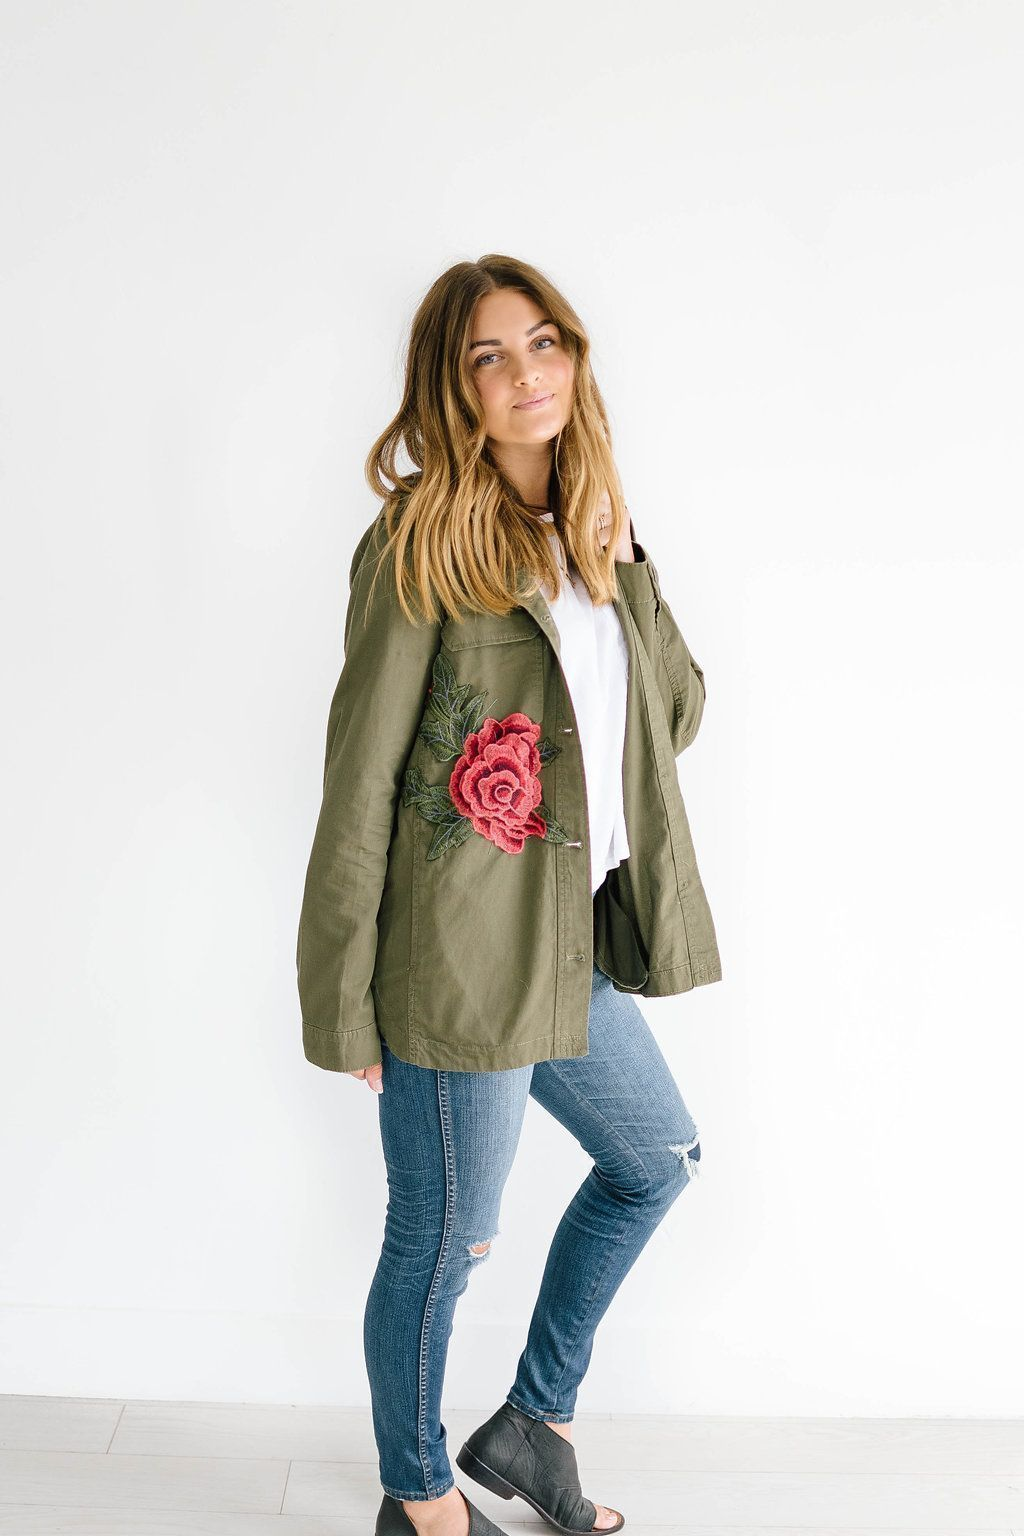 Army of Roses Jacket in Green